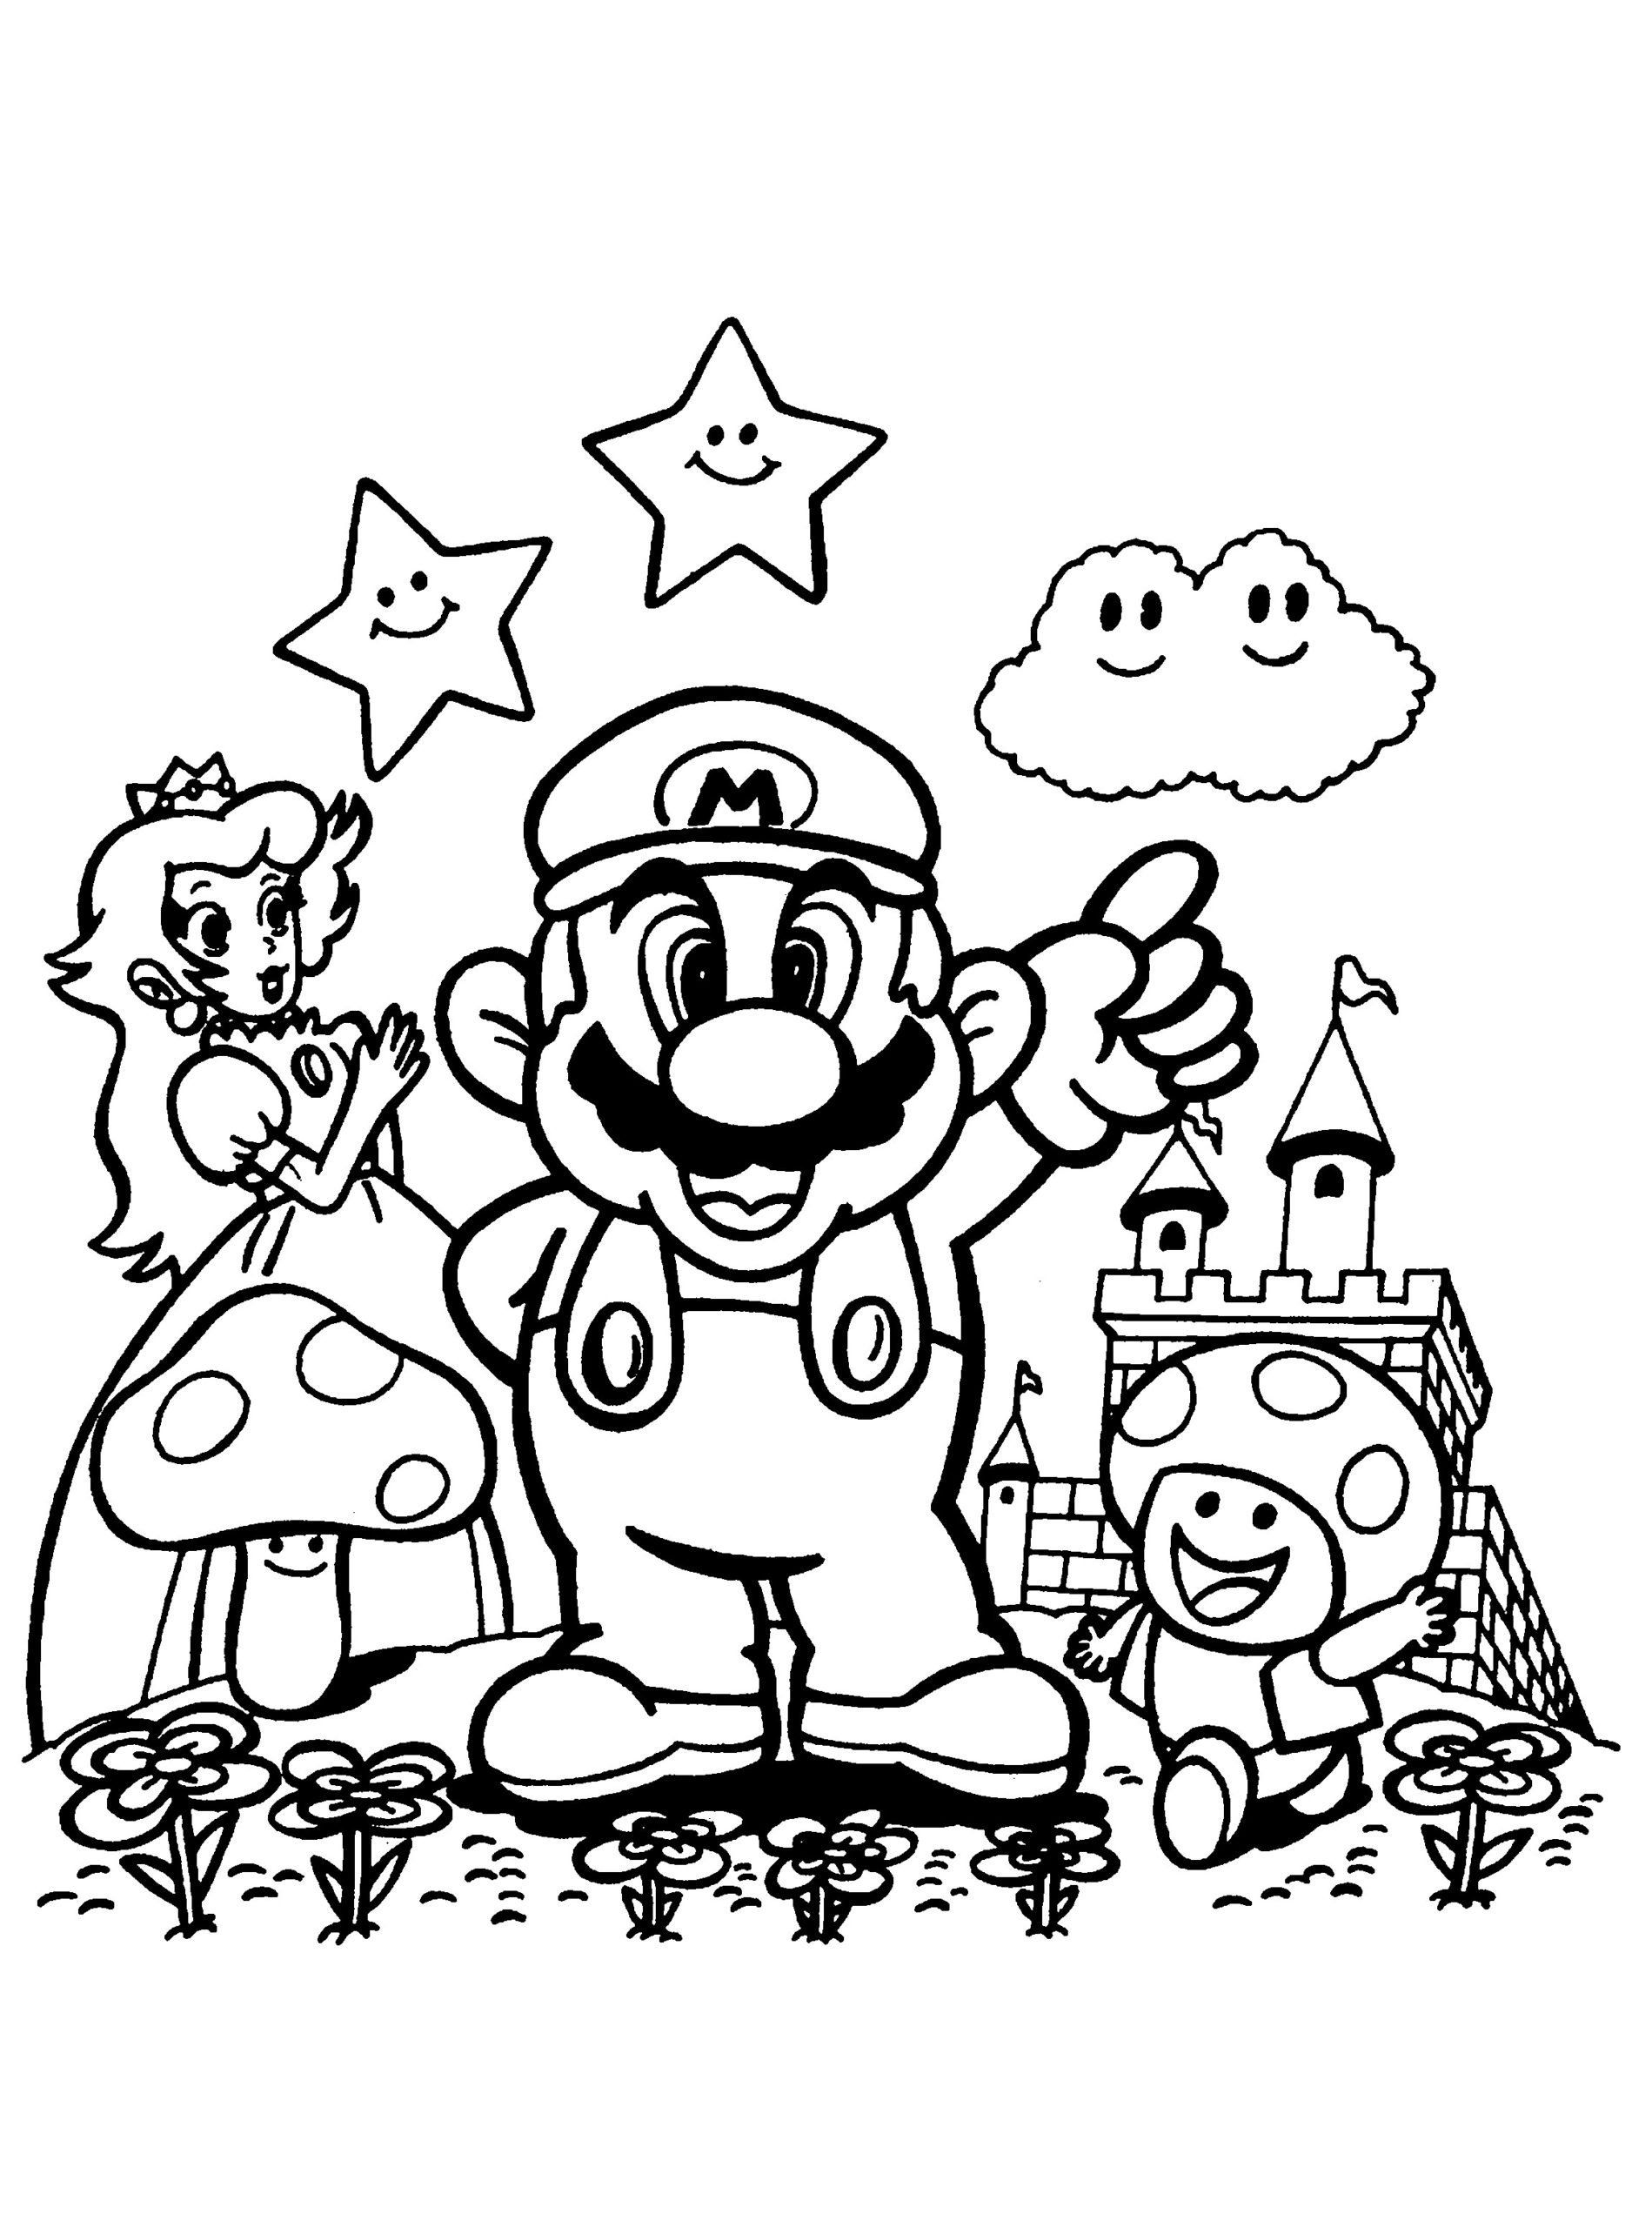 Mario Bros Coloring Books Coloring Page For Kids Top Preeminent Super Mario Brothers In 2020 Super Mario Coloring Pages Mario Coloring Pages Coloring Books